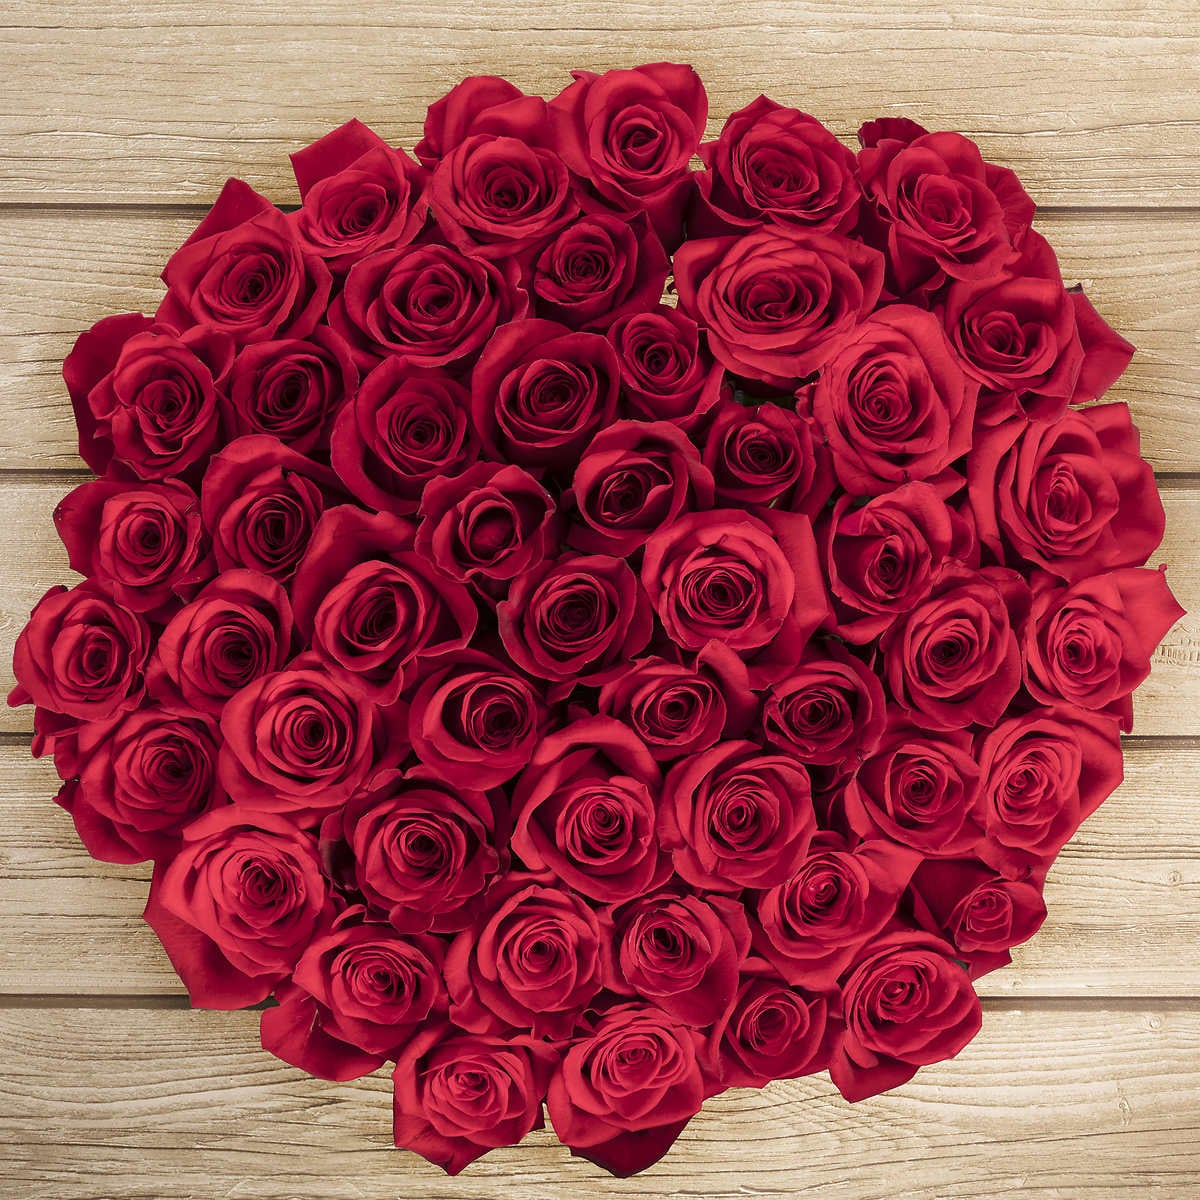 Best deal for valentine 39 s day roses at costco popsugar moms for Buying roses on valentines day